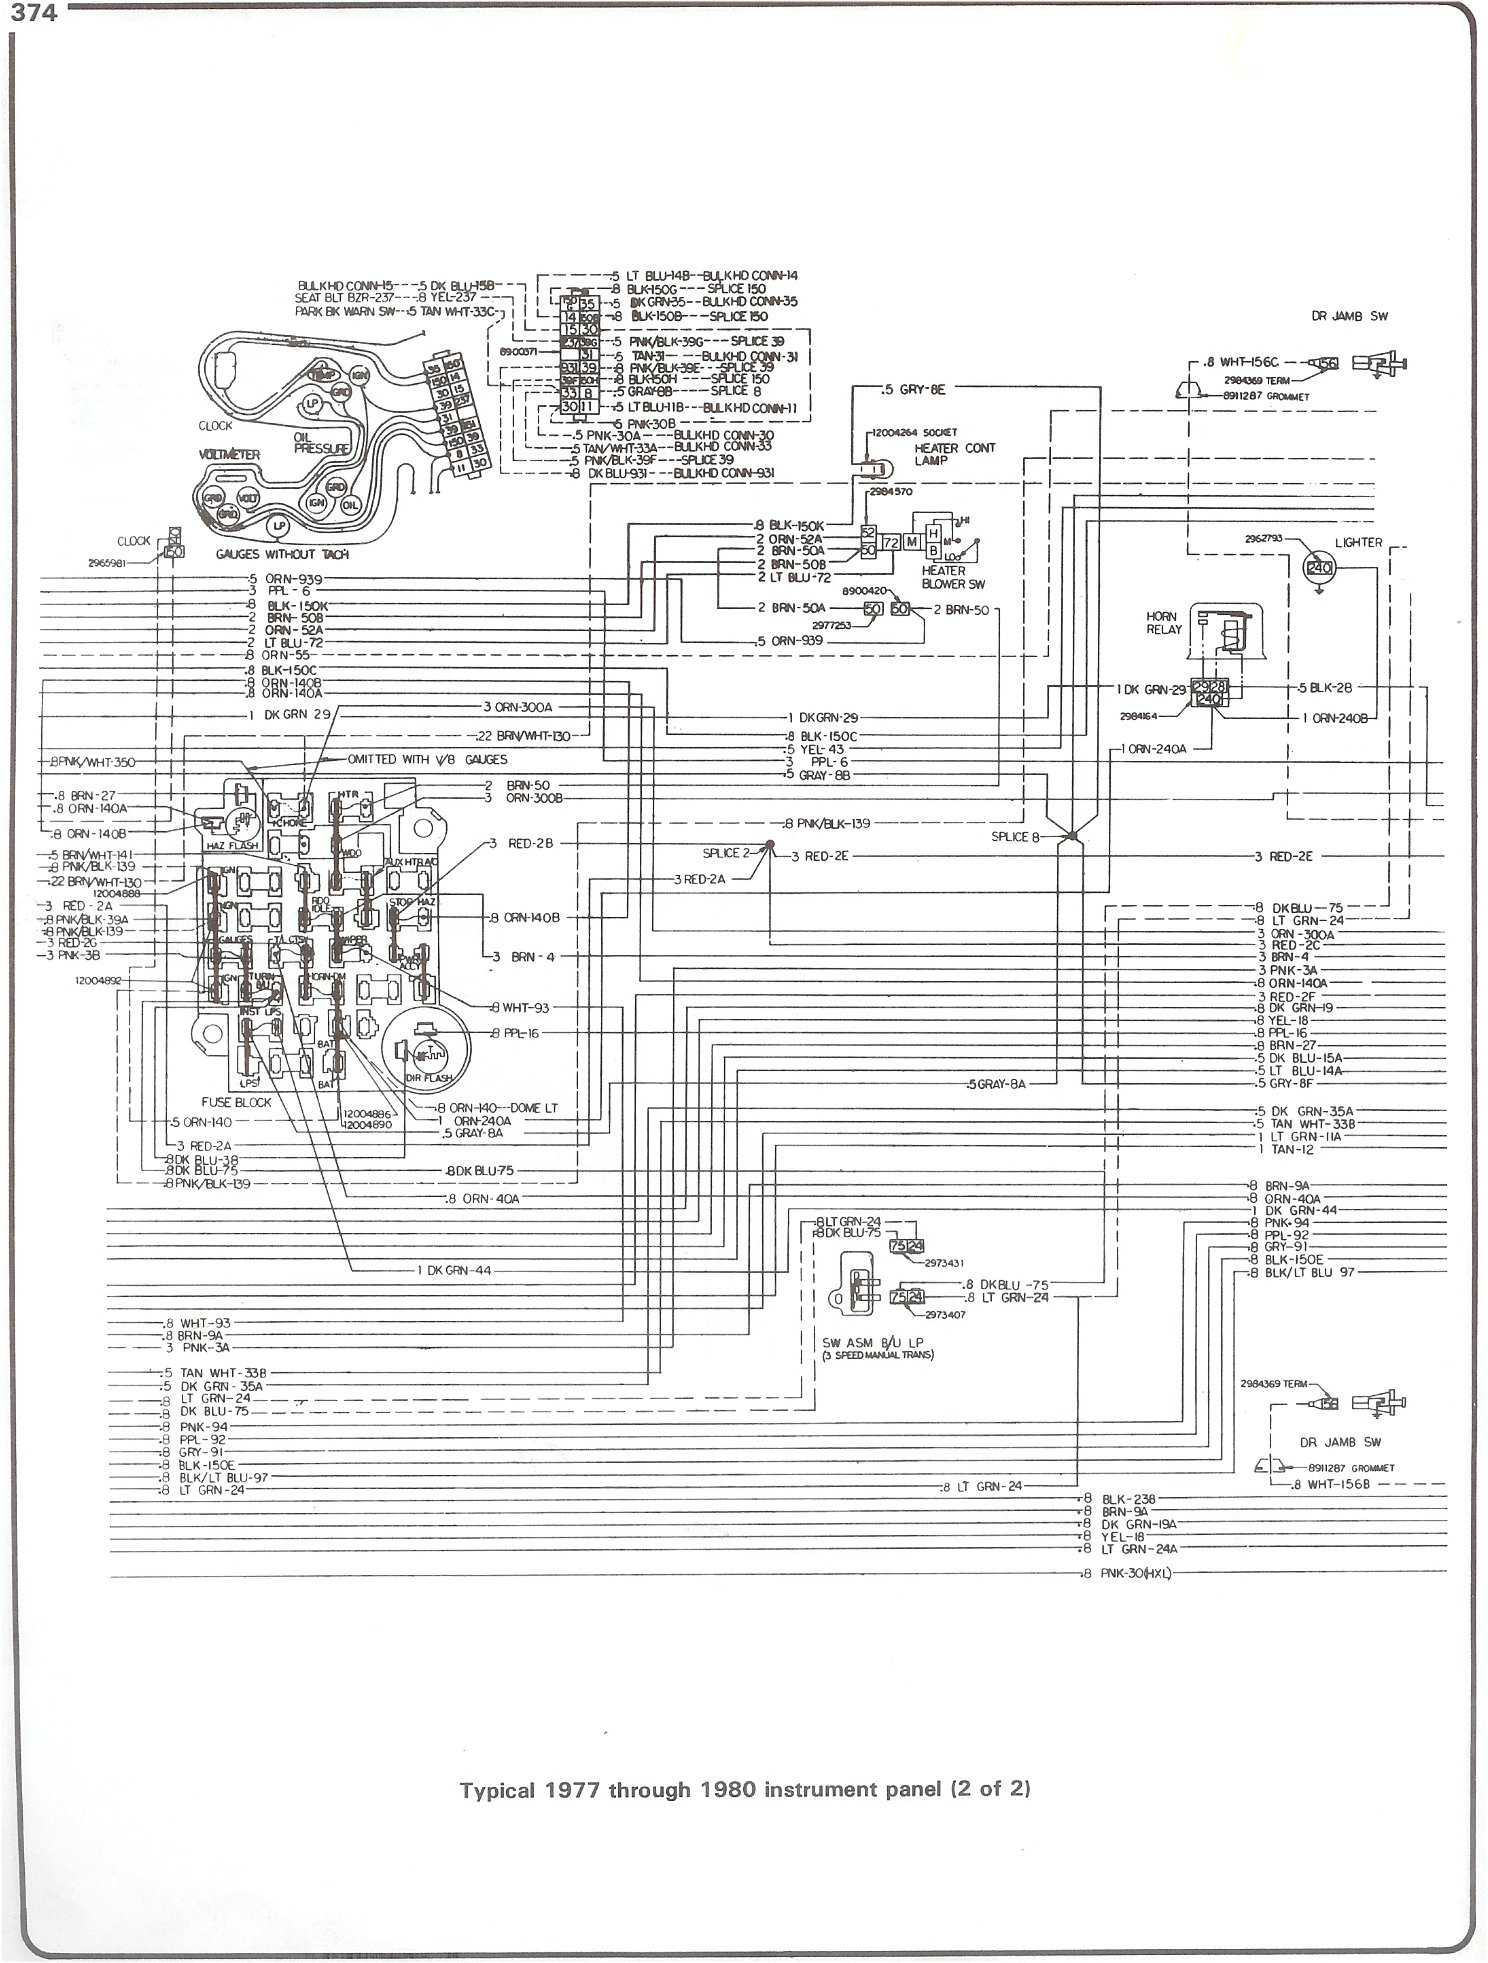 77 80_instrument_pg2 1978 chevy truck wiring diagram chevy malibu ignition wiring eclipse avn2454 wiring diagram at bayanpartner.co